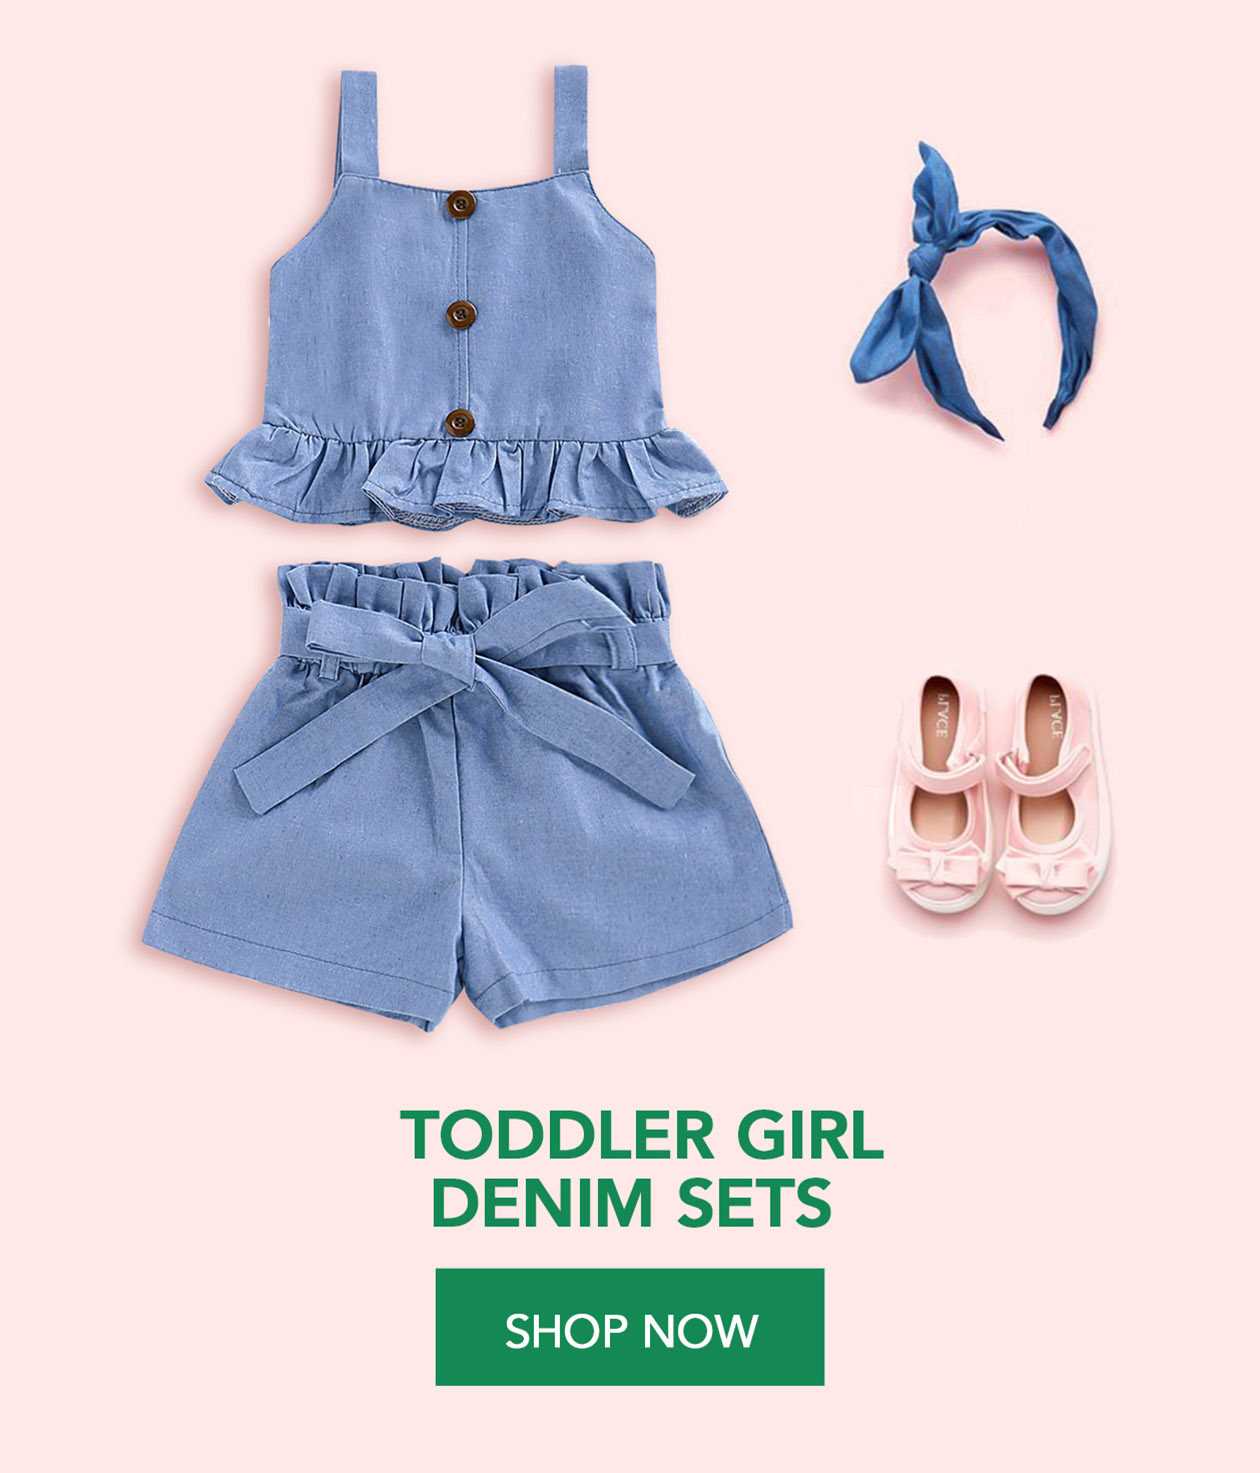 c7d3c866 SHOP BY CATEGORIES. Baby & Toddler Girl